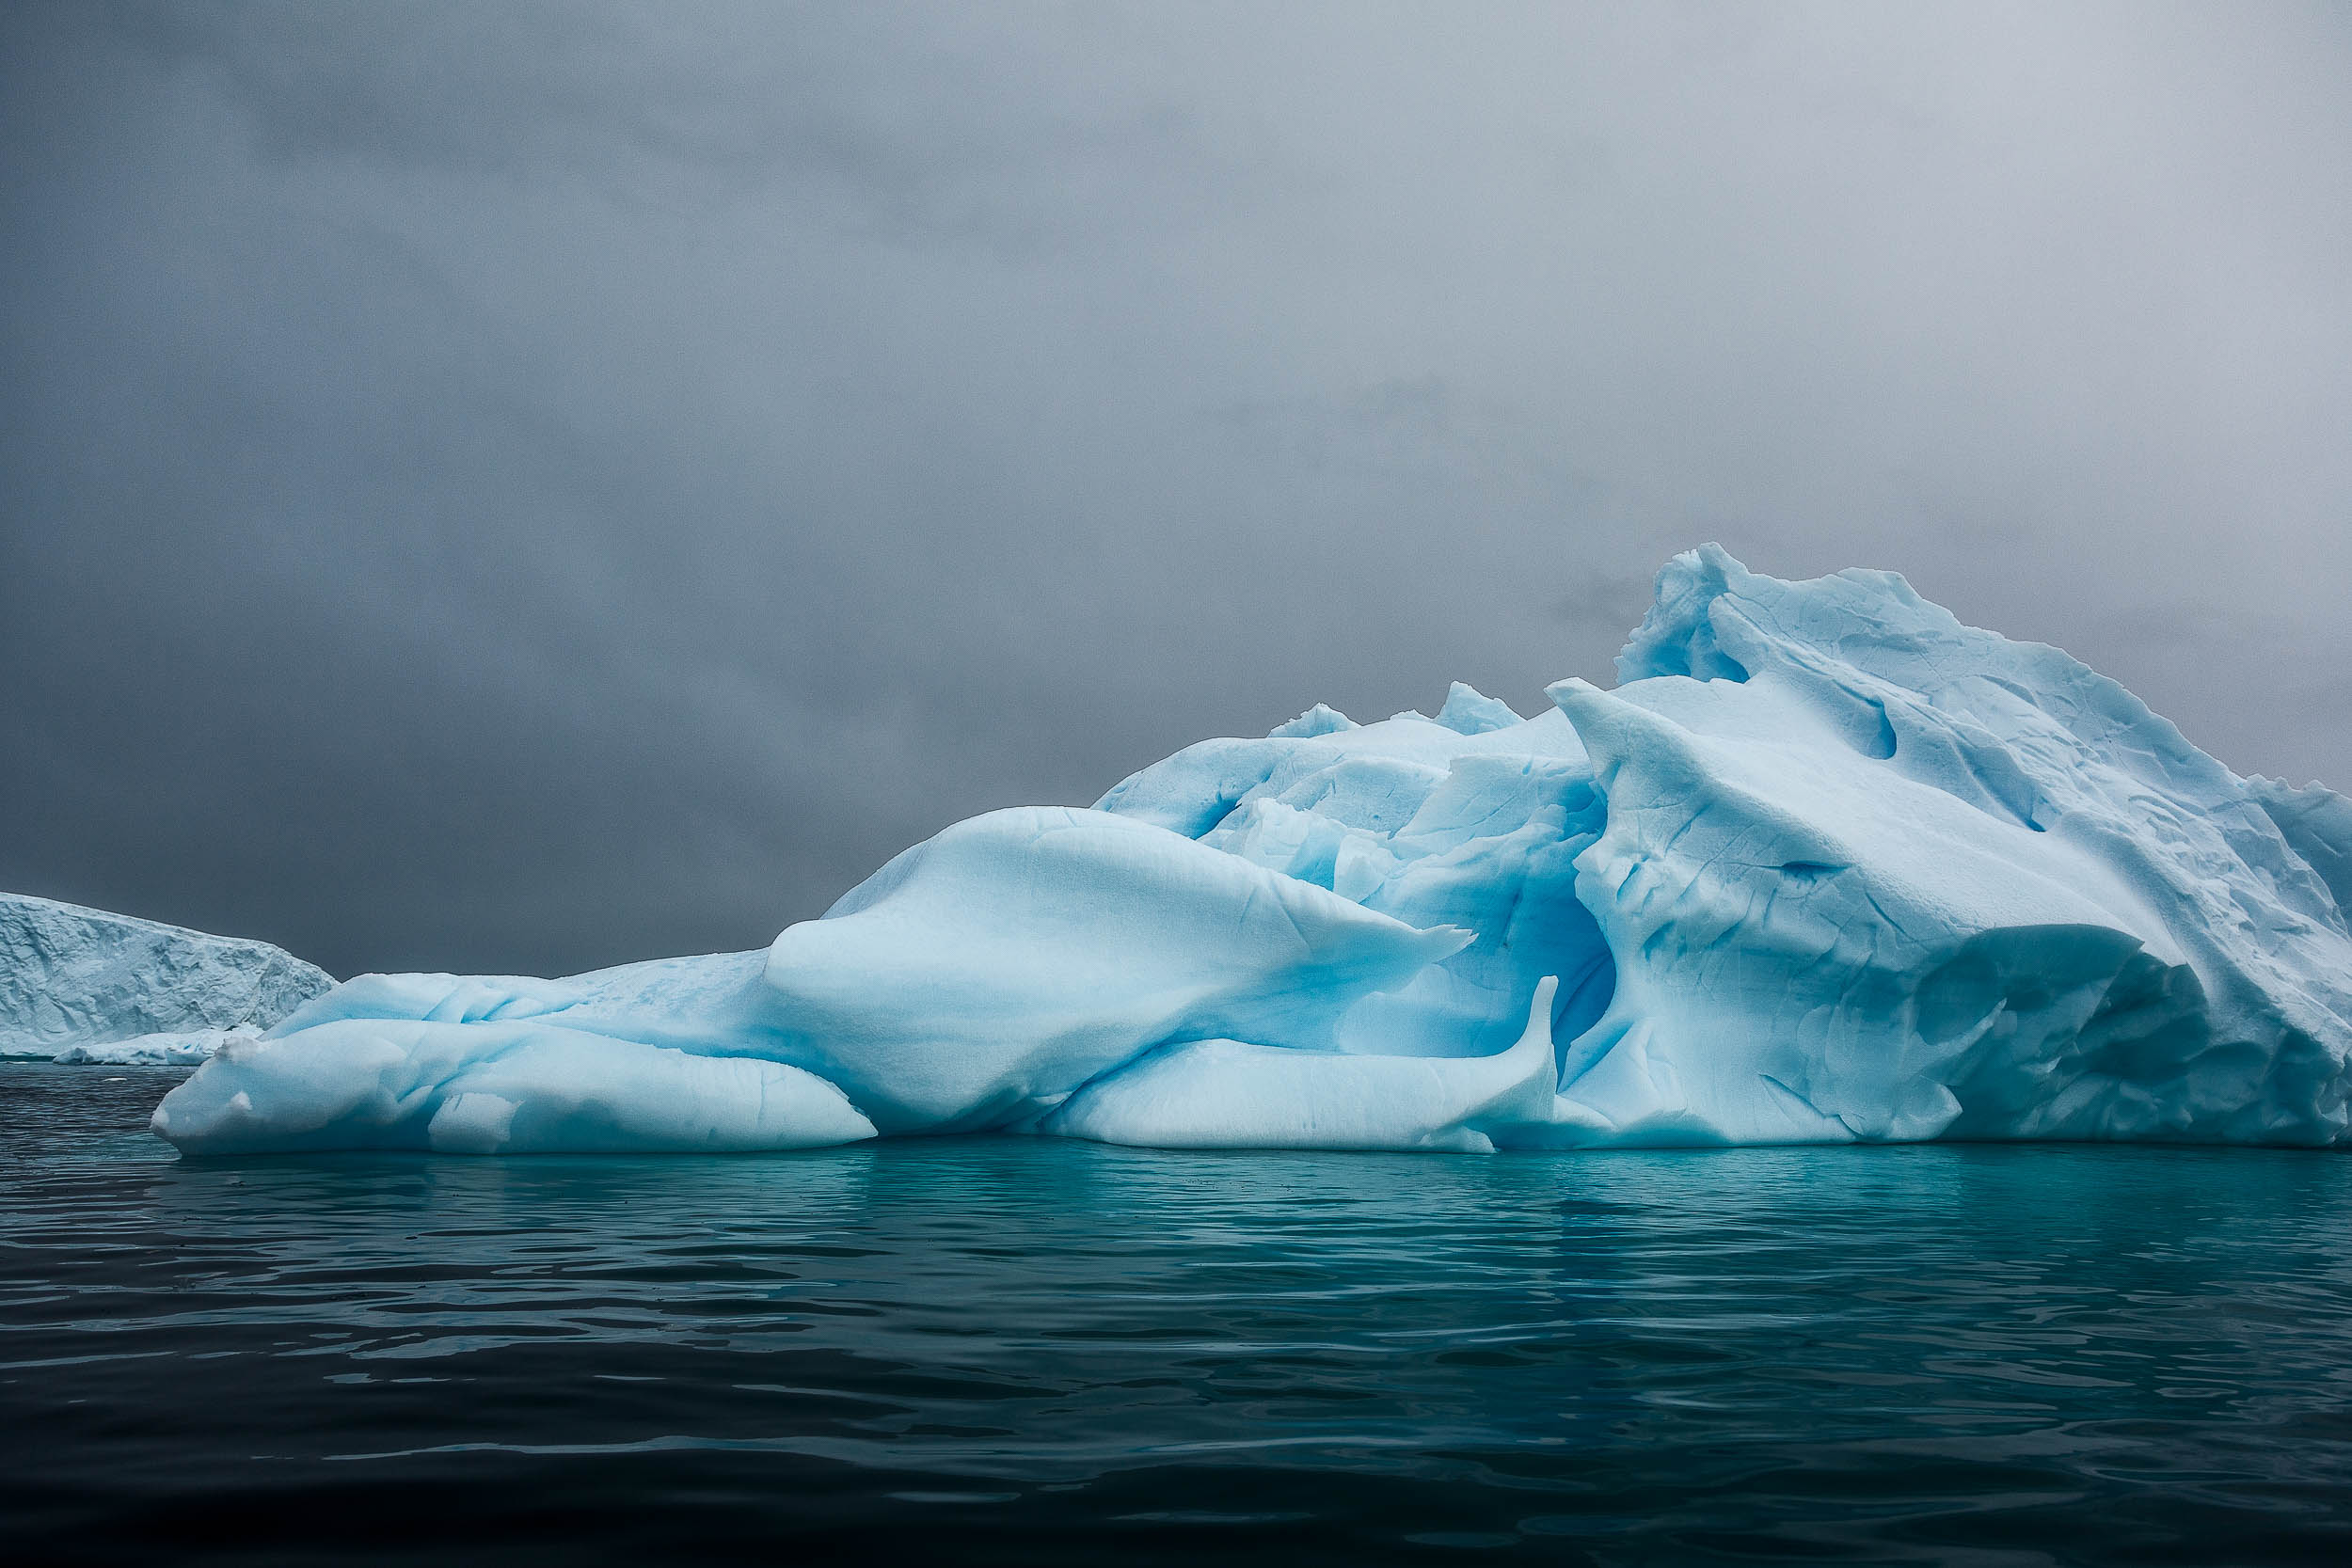 The top of an Iceberg on aqua waters under a mournful sky off Cuverville Island in Antarctica.